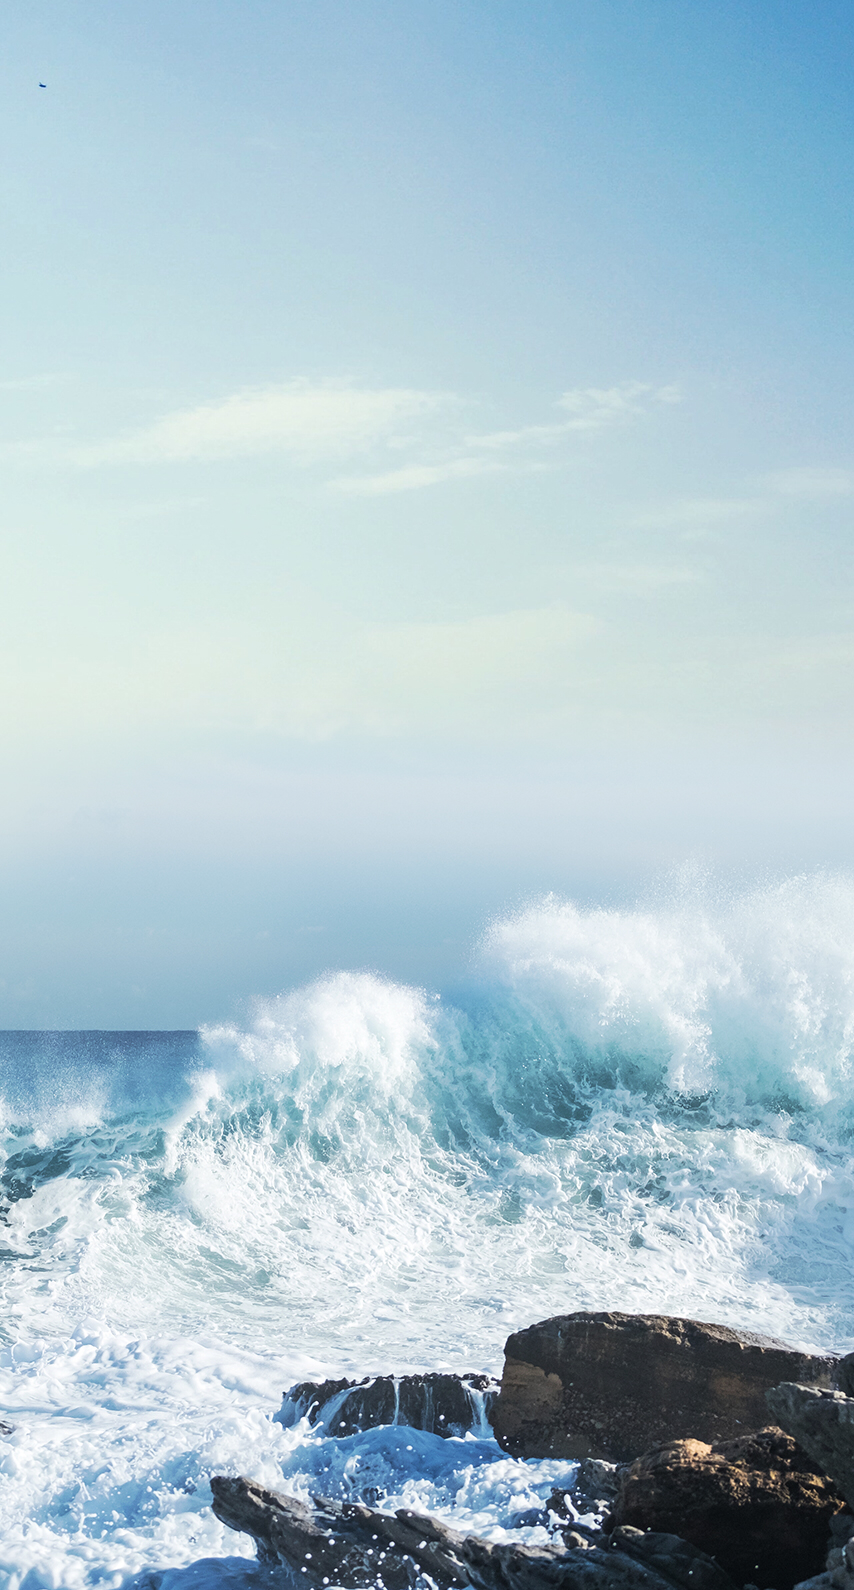 Pin By Courtmeister3000 On Arrow Fanfiction With Images Ocean Wallpaper Ocean Waves Ocean Vibes